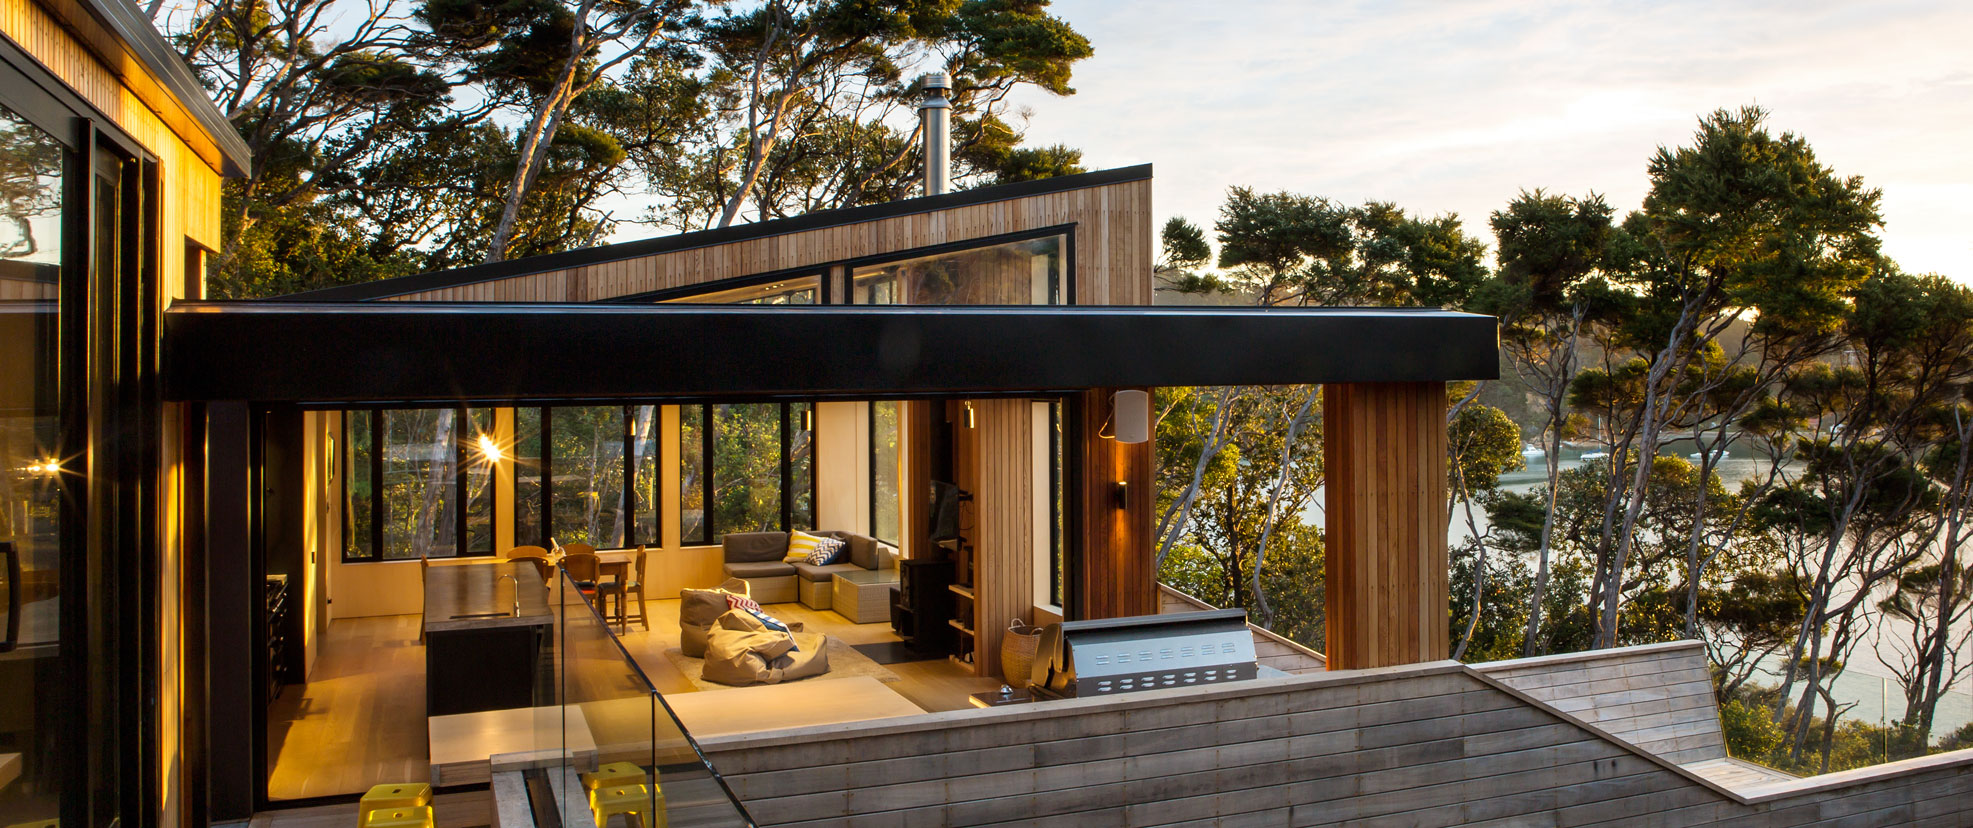 Kawau House; Architect: Tim Dorrington; Photographer: Emma-Jane Hertherington